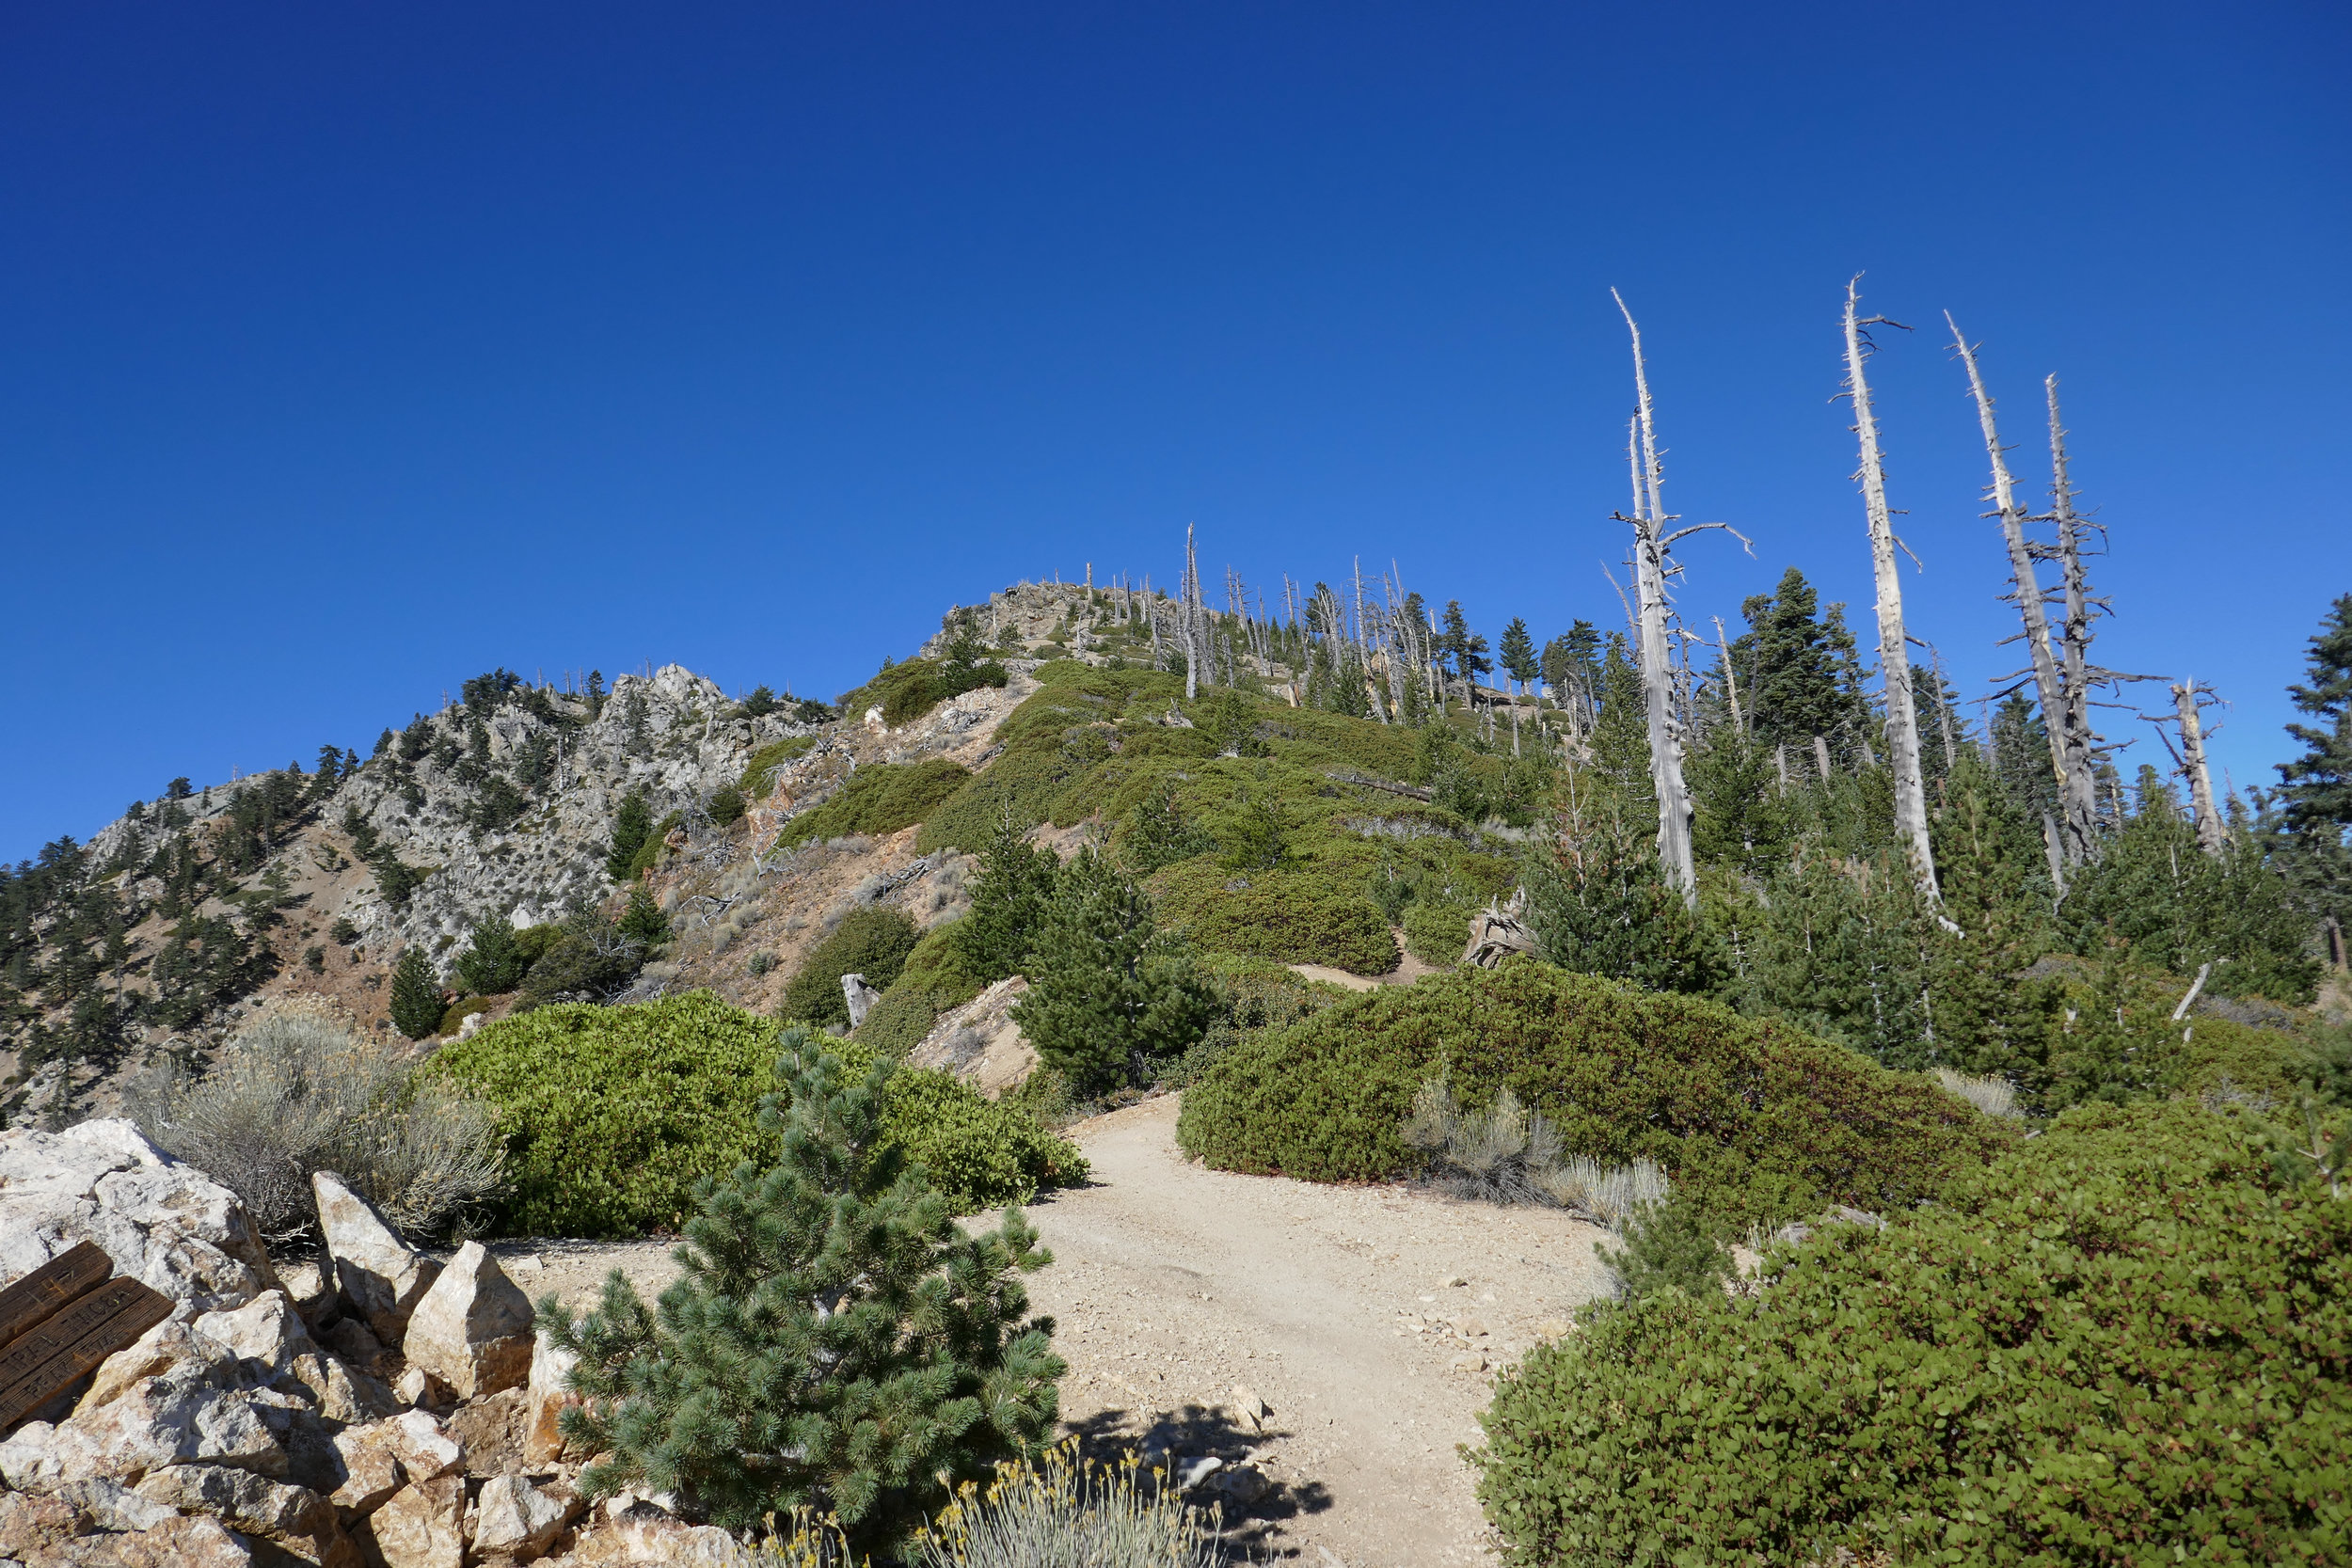 There were some false summits on this trail. Just when you think you see it, you realize you have a lot farther to go then you think!